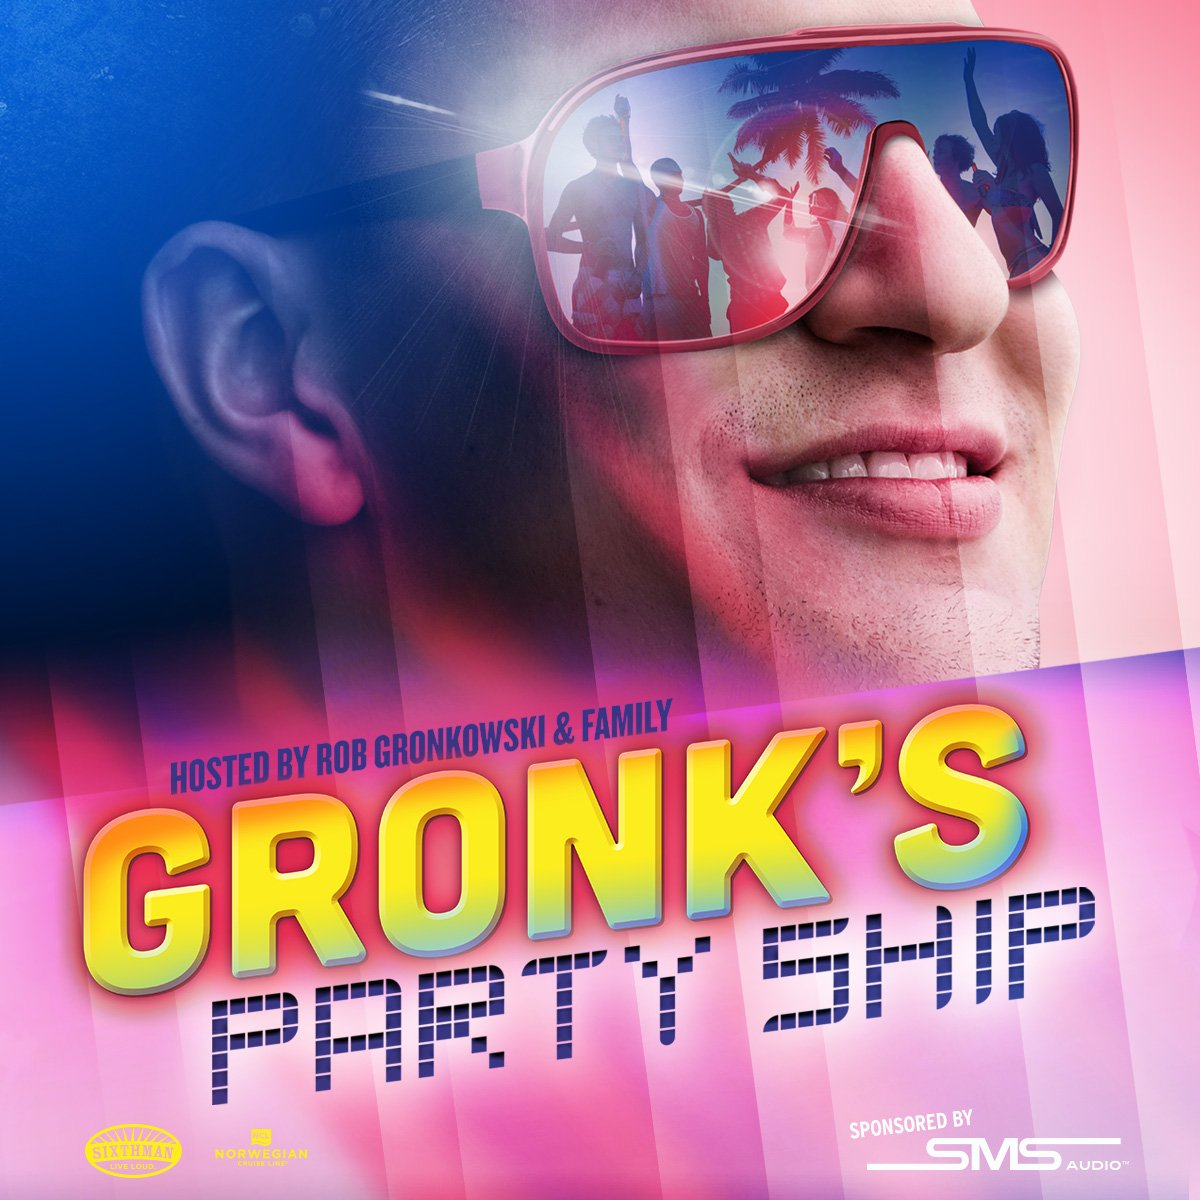 check this out go to the Gronk Island for FREE with @RobGronkowski and @SMSAUDIO : https://t.co/hJTQGmzG1y https://t.co/cgeTXcpGEg